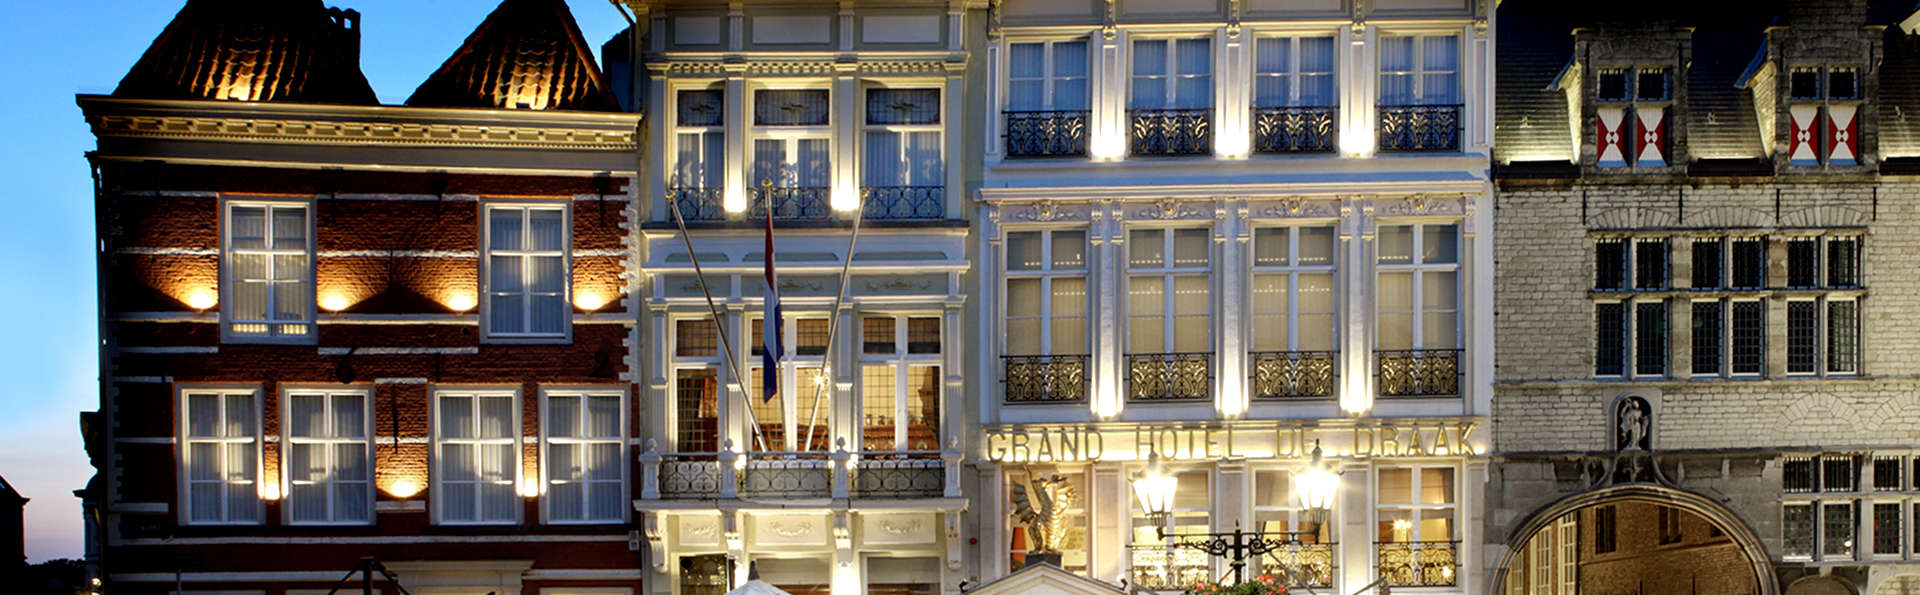 Grand Hotel de Draak - EDIT_NEW_FRONT.jpg